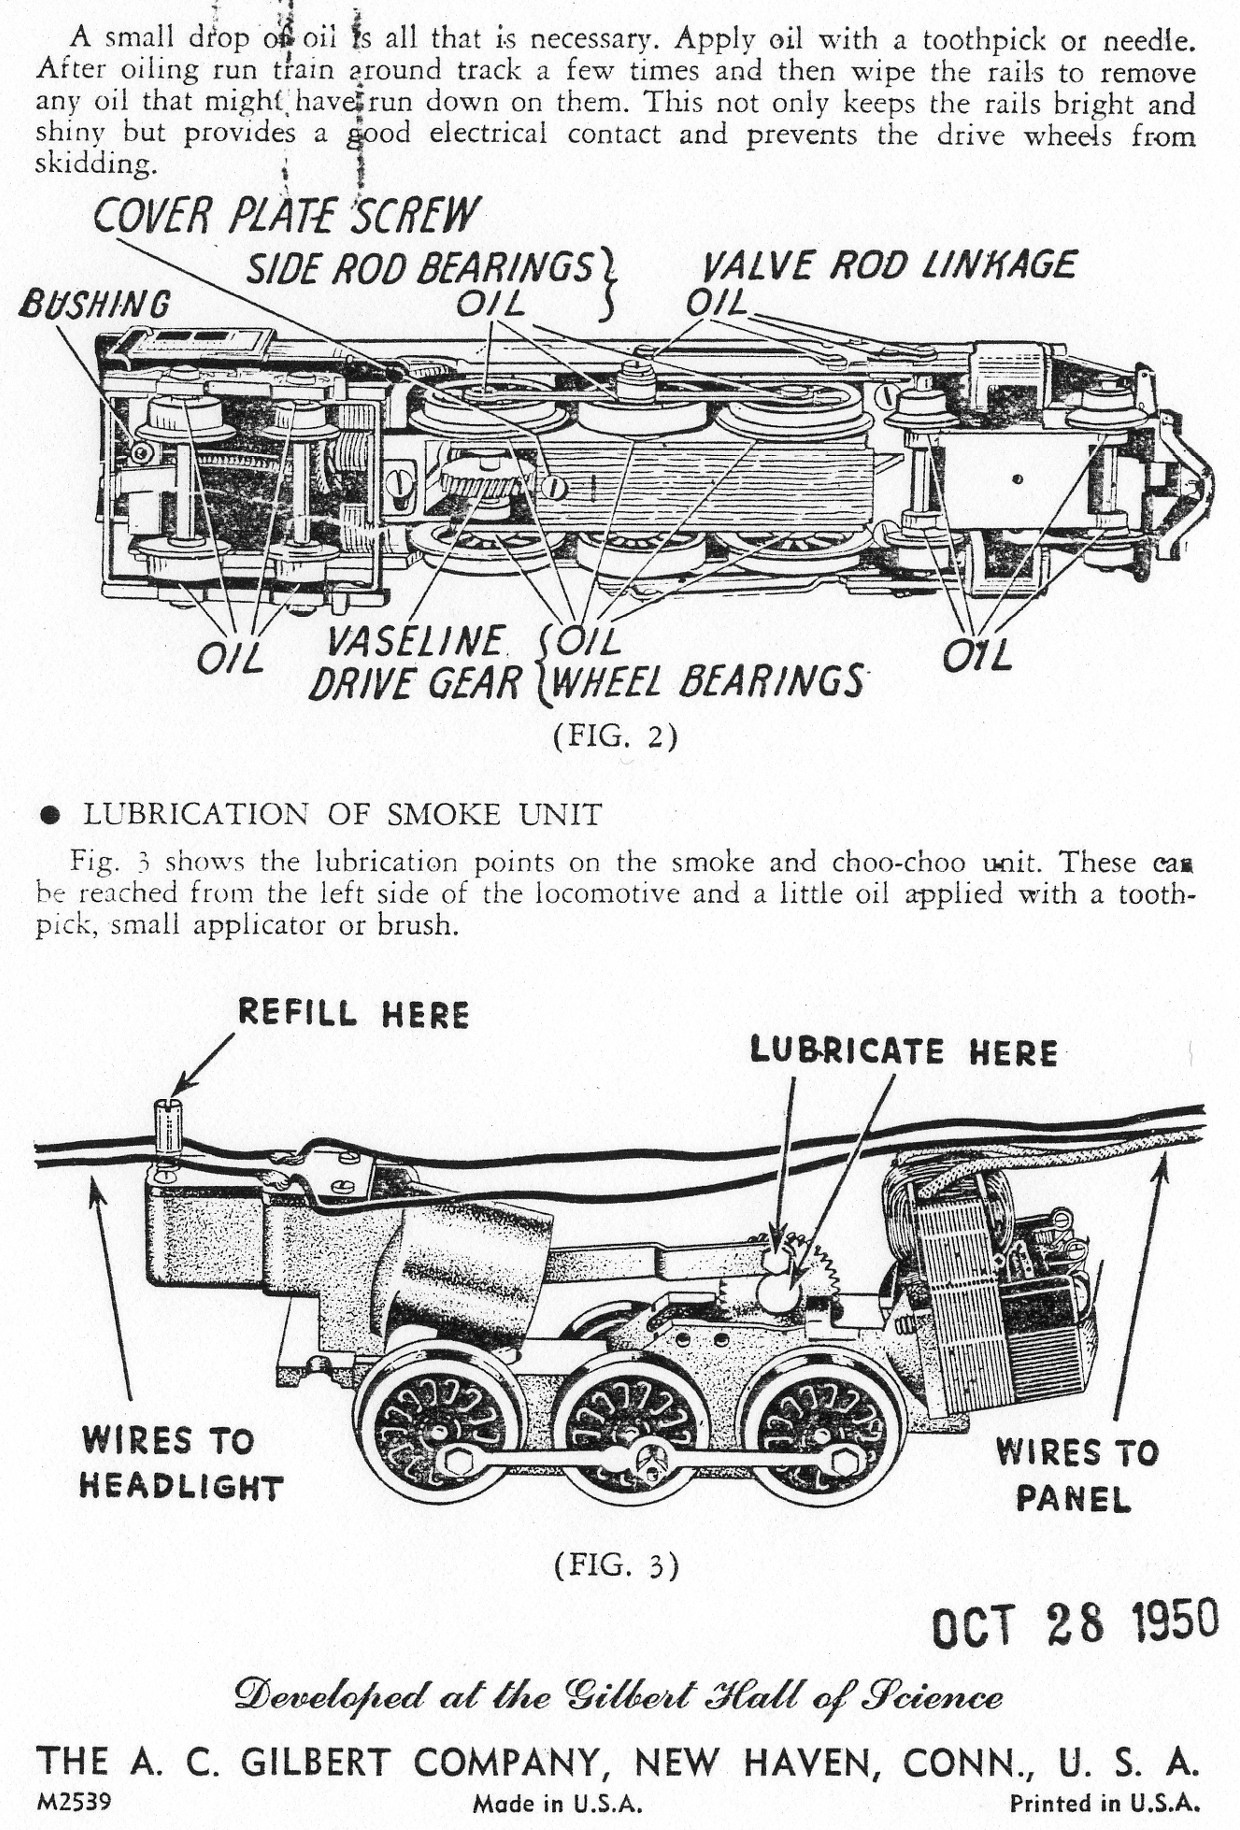 American Flyer Steam Engine Wiring Diagram Lo Otive Locomotive Diagrams Worm Drive Instructions Of